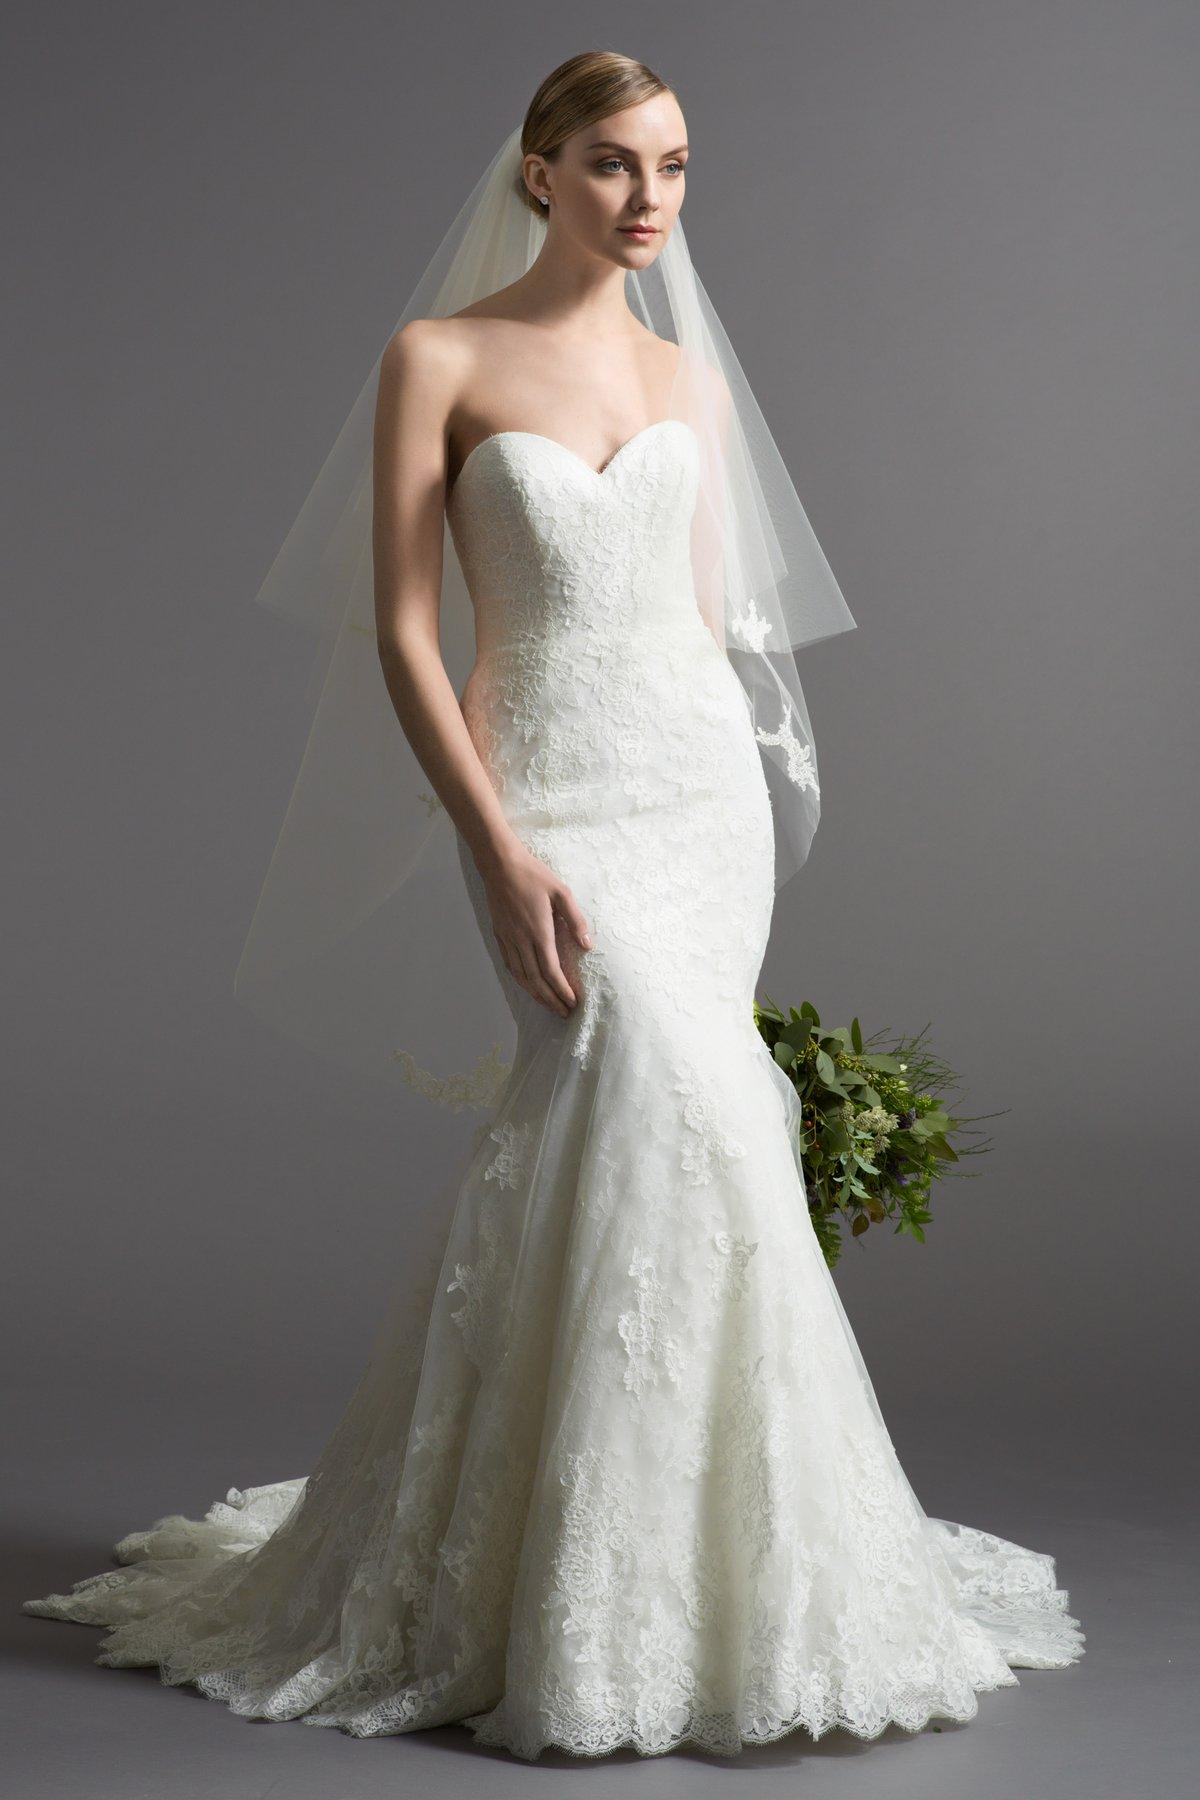 Watters Ivory Bouquet Lace Faustina 60168 Gown Traditional Wedding Dress  Size 0 (XS)